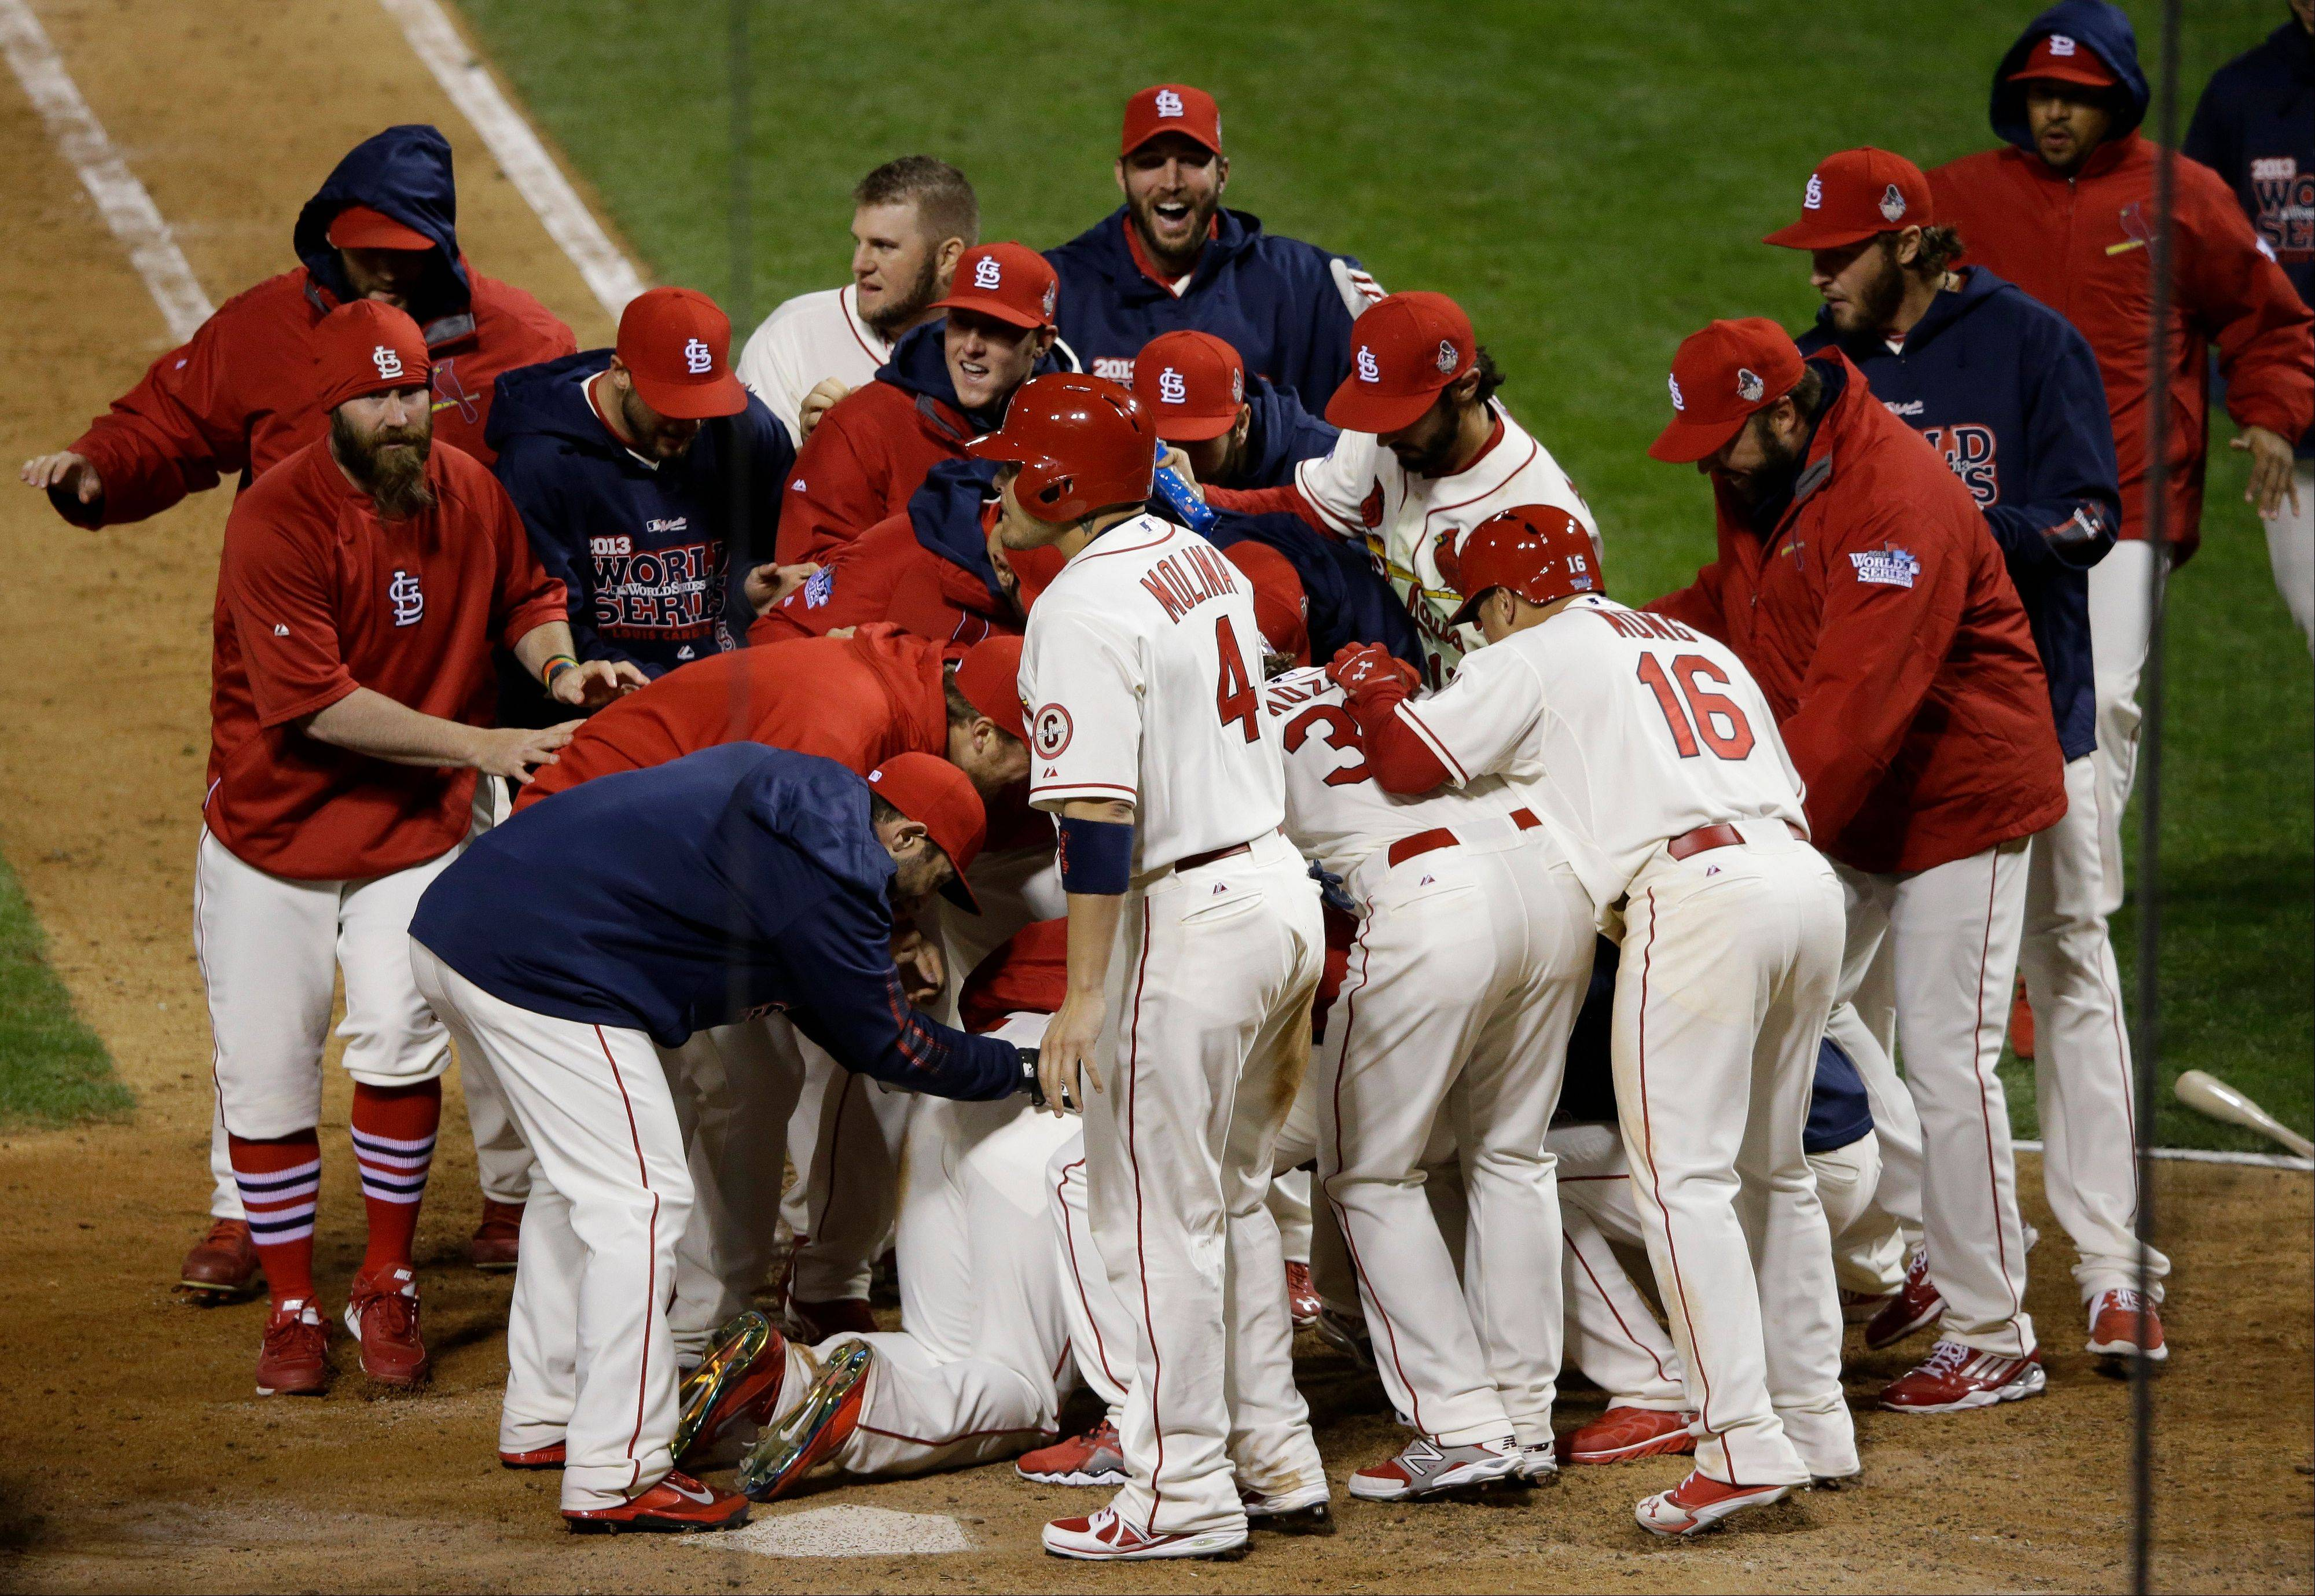 St. Louis Cardinals players celebrate with Allen Craig, on ground, after Craig scored the game-winning run on an obstruction play in the ninth inning.